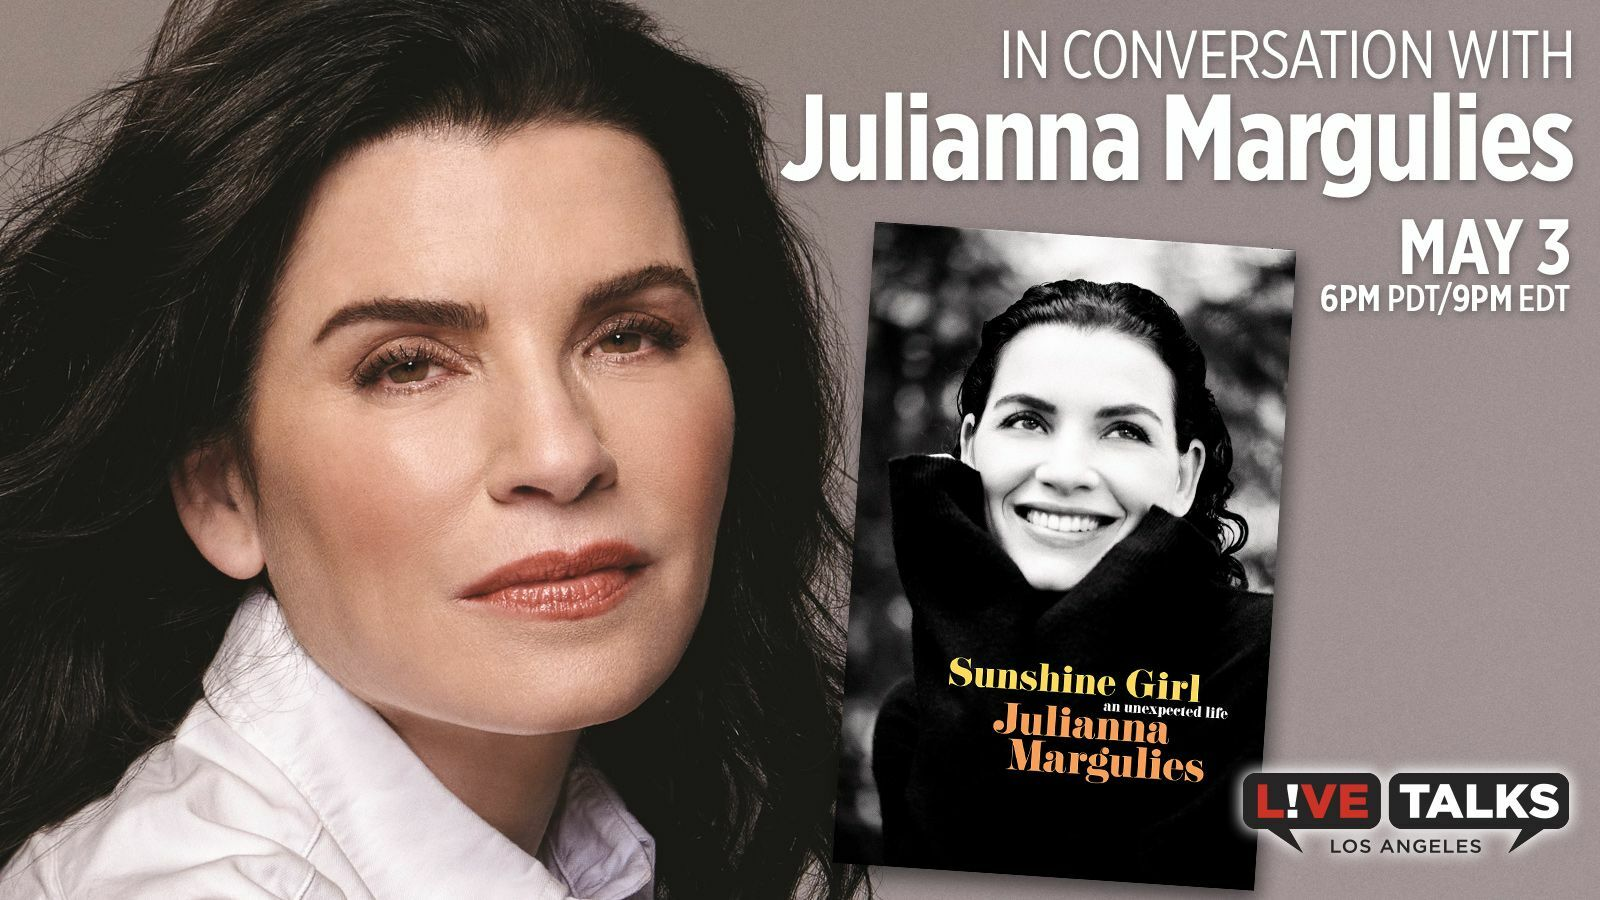 An Evening with Julianna Margulies - Online